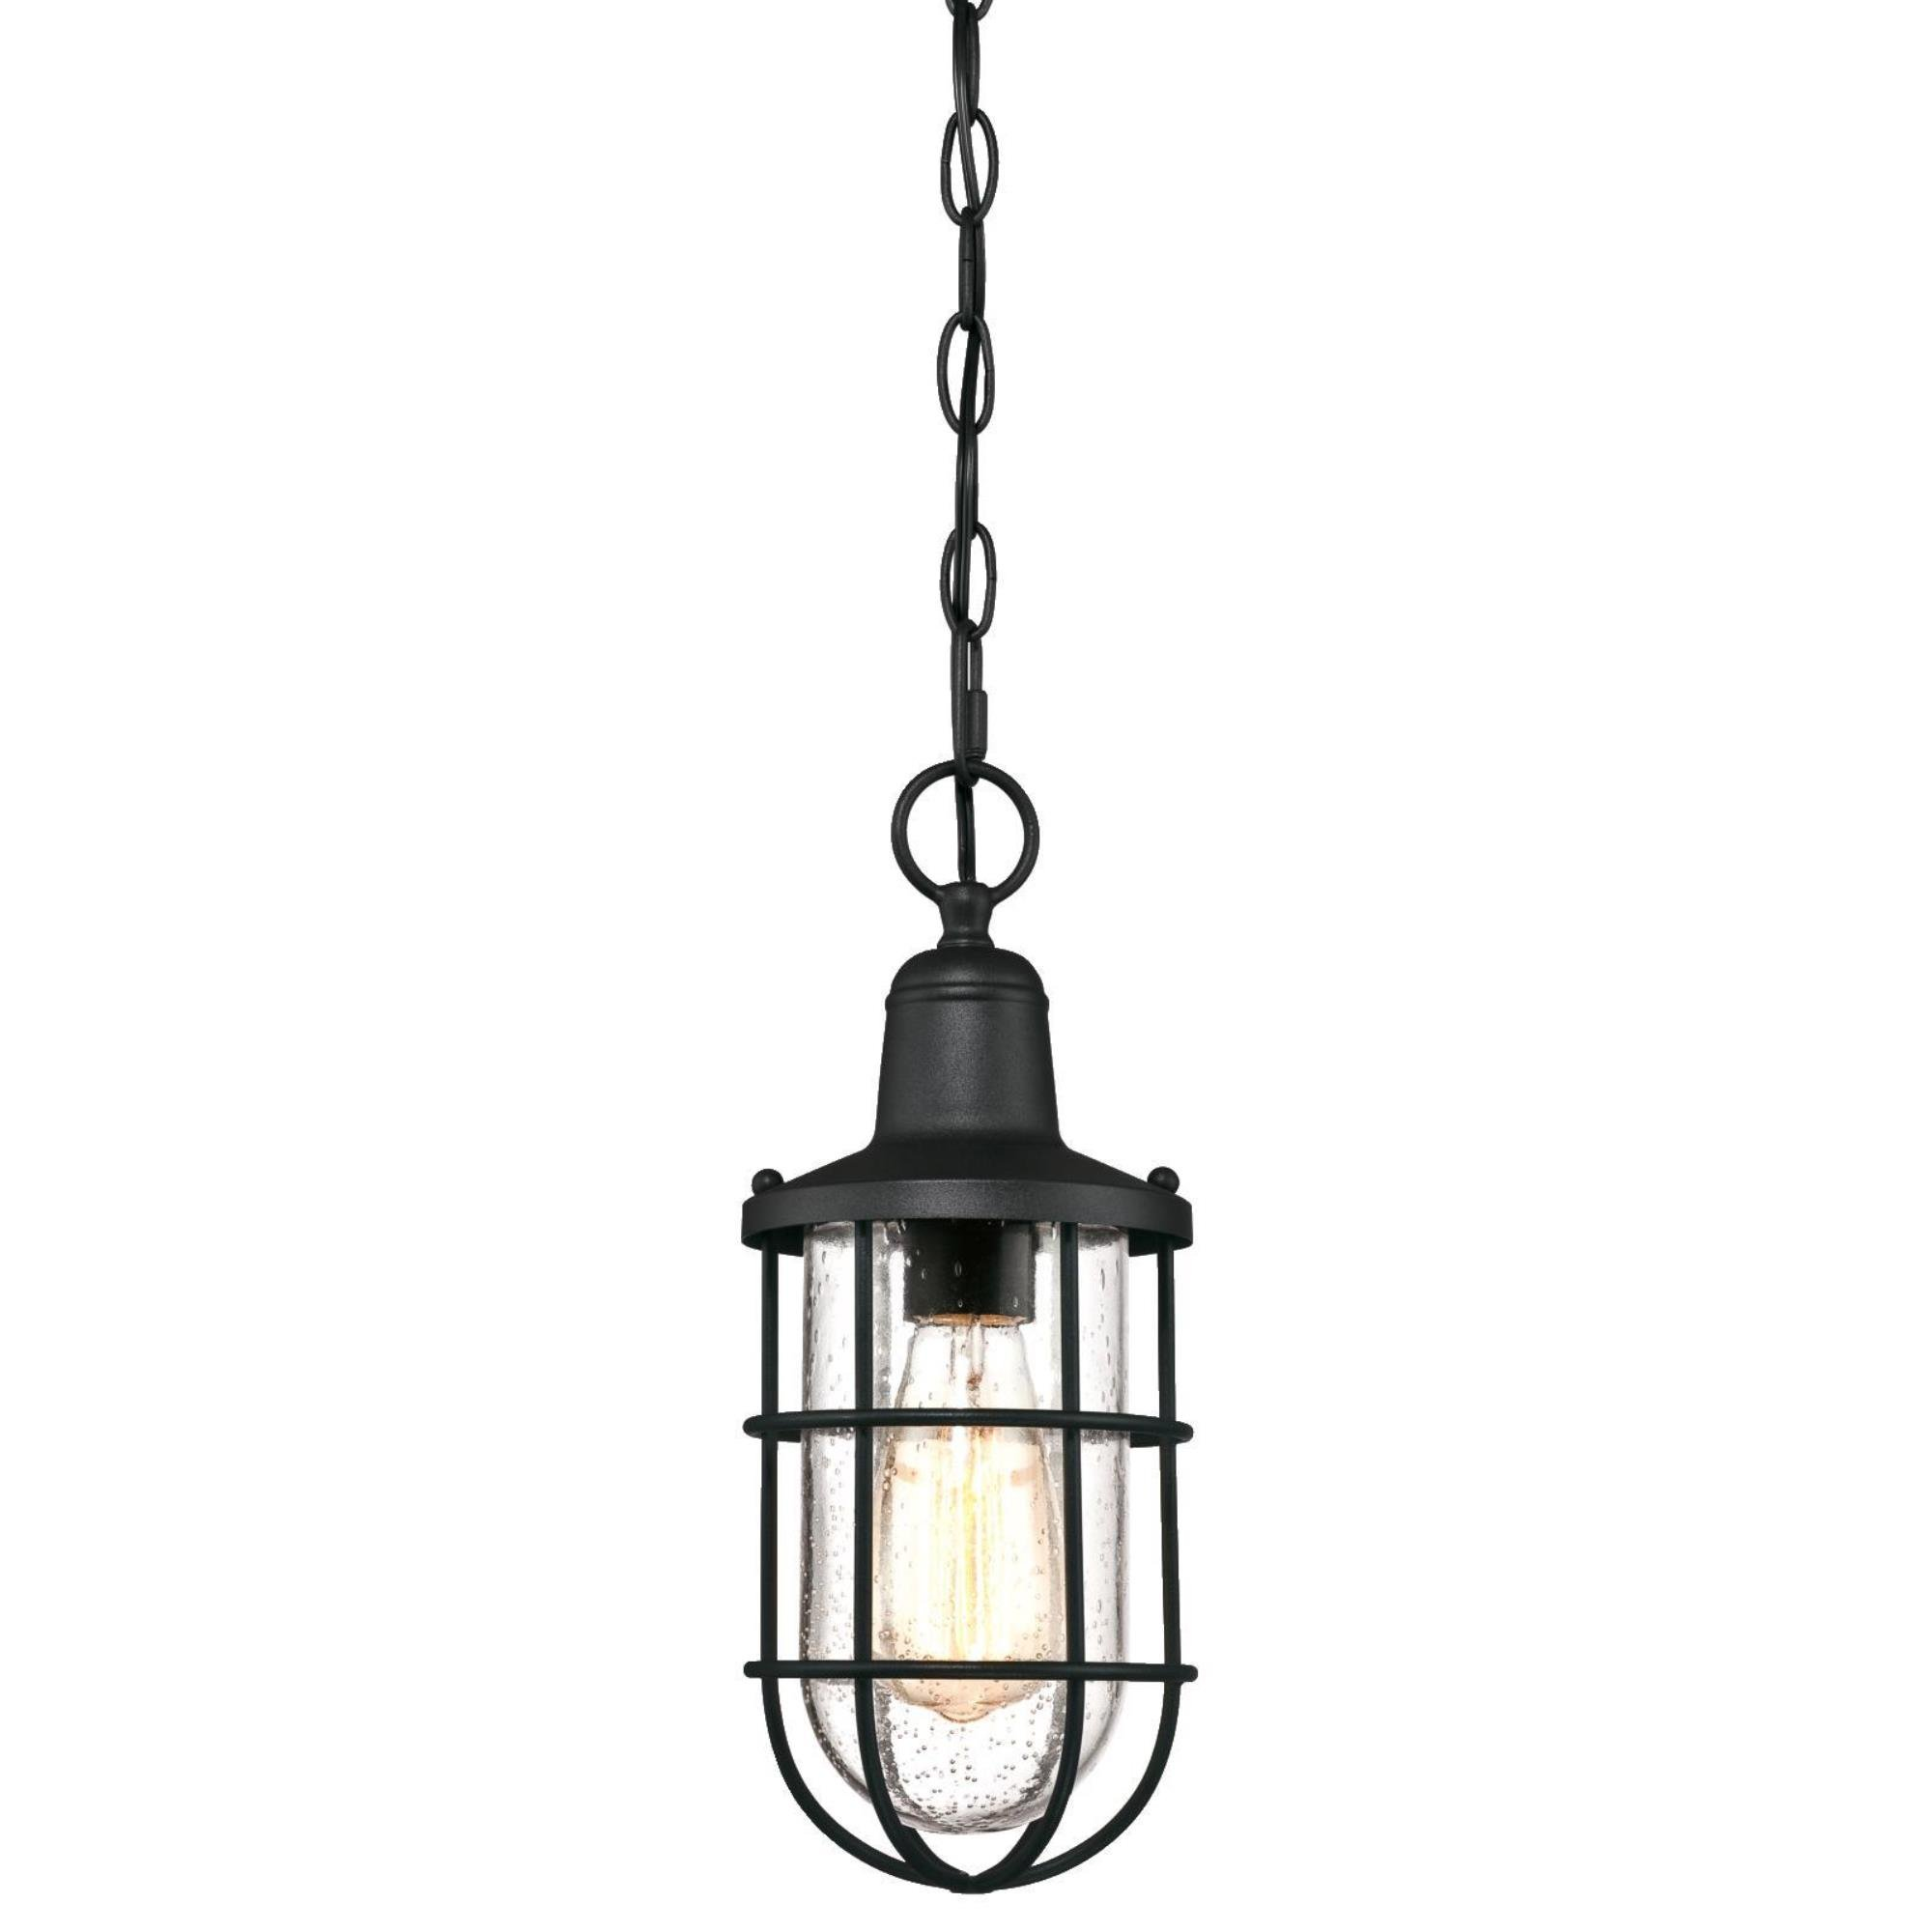 Westinghouse Lighting 6334800 Crestview One-Light Outdoor Pendant, Textured Black Finish with Clear Seeded Glass, Oil Rubbed Bronze by Westinghouse Lighting